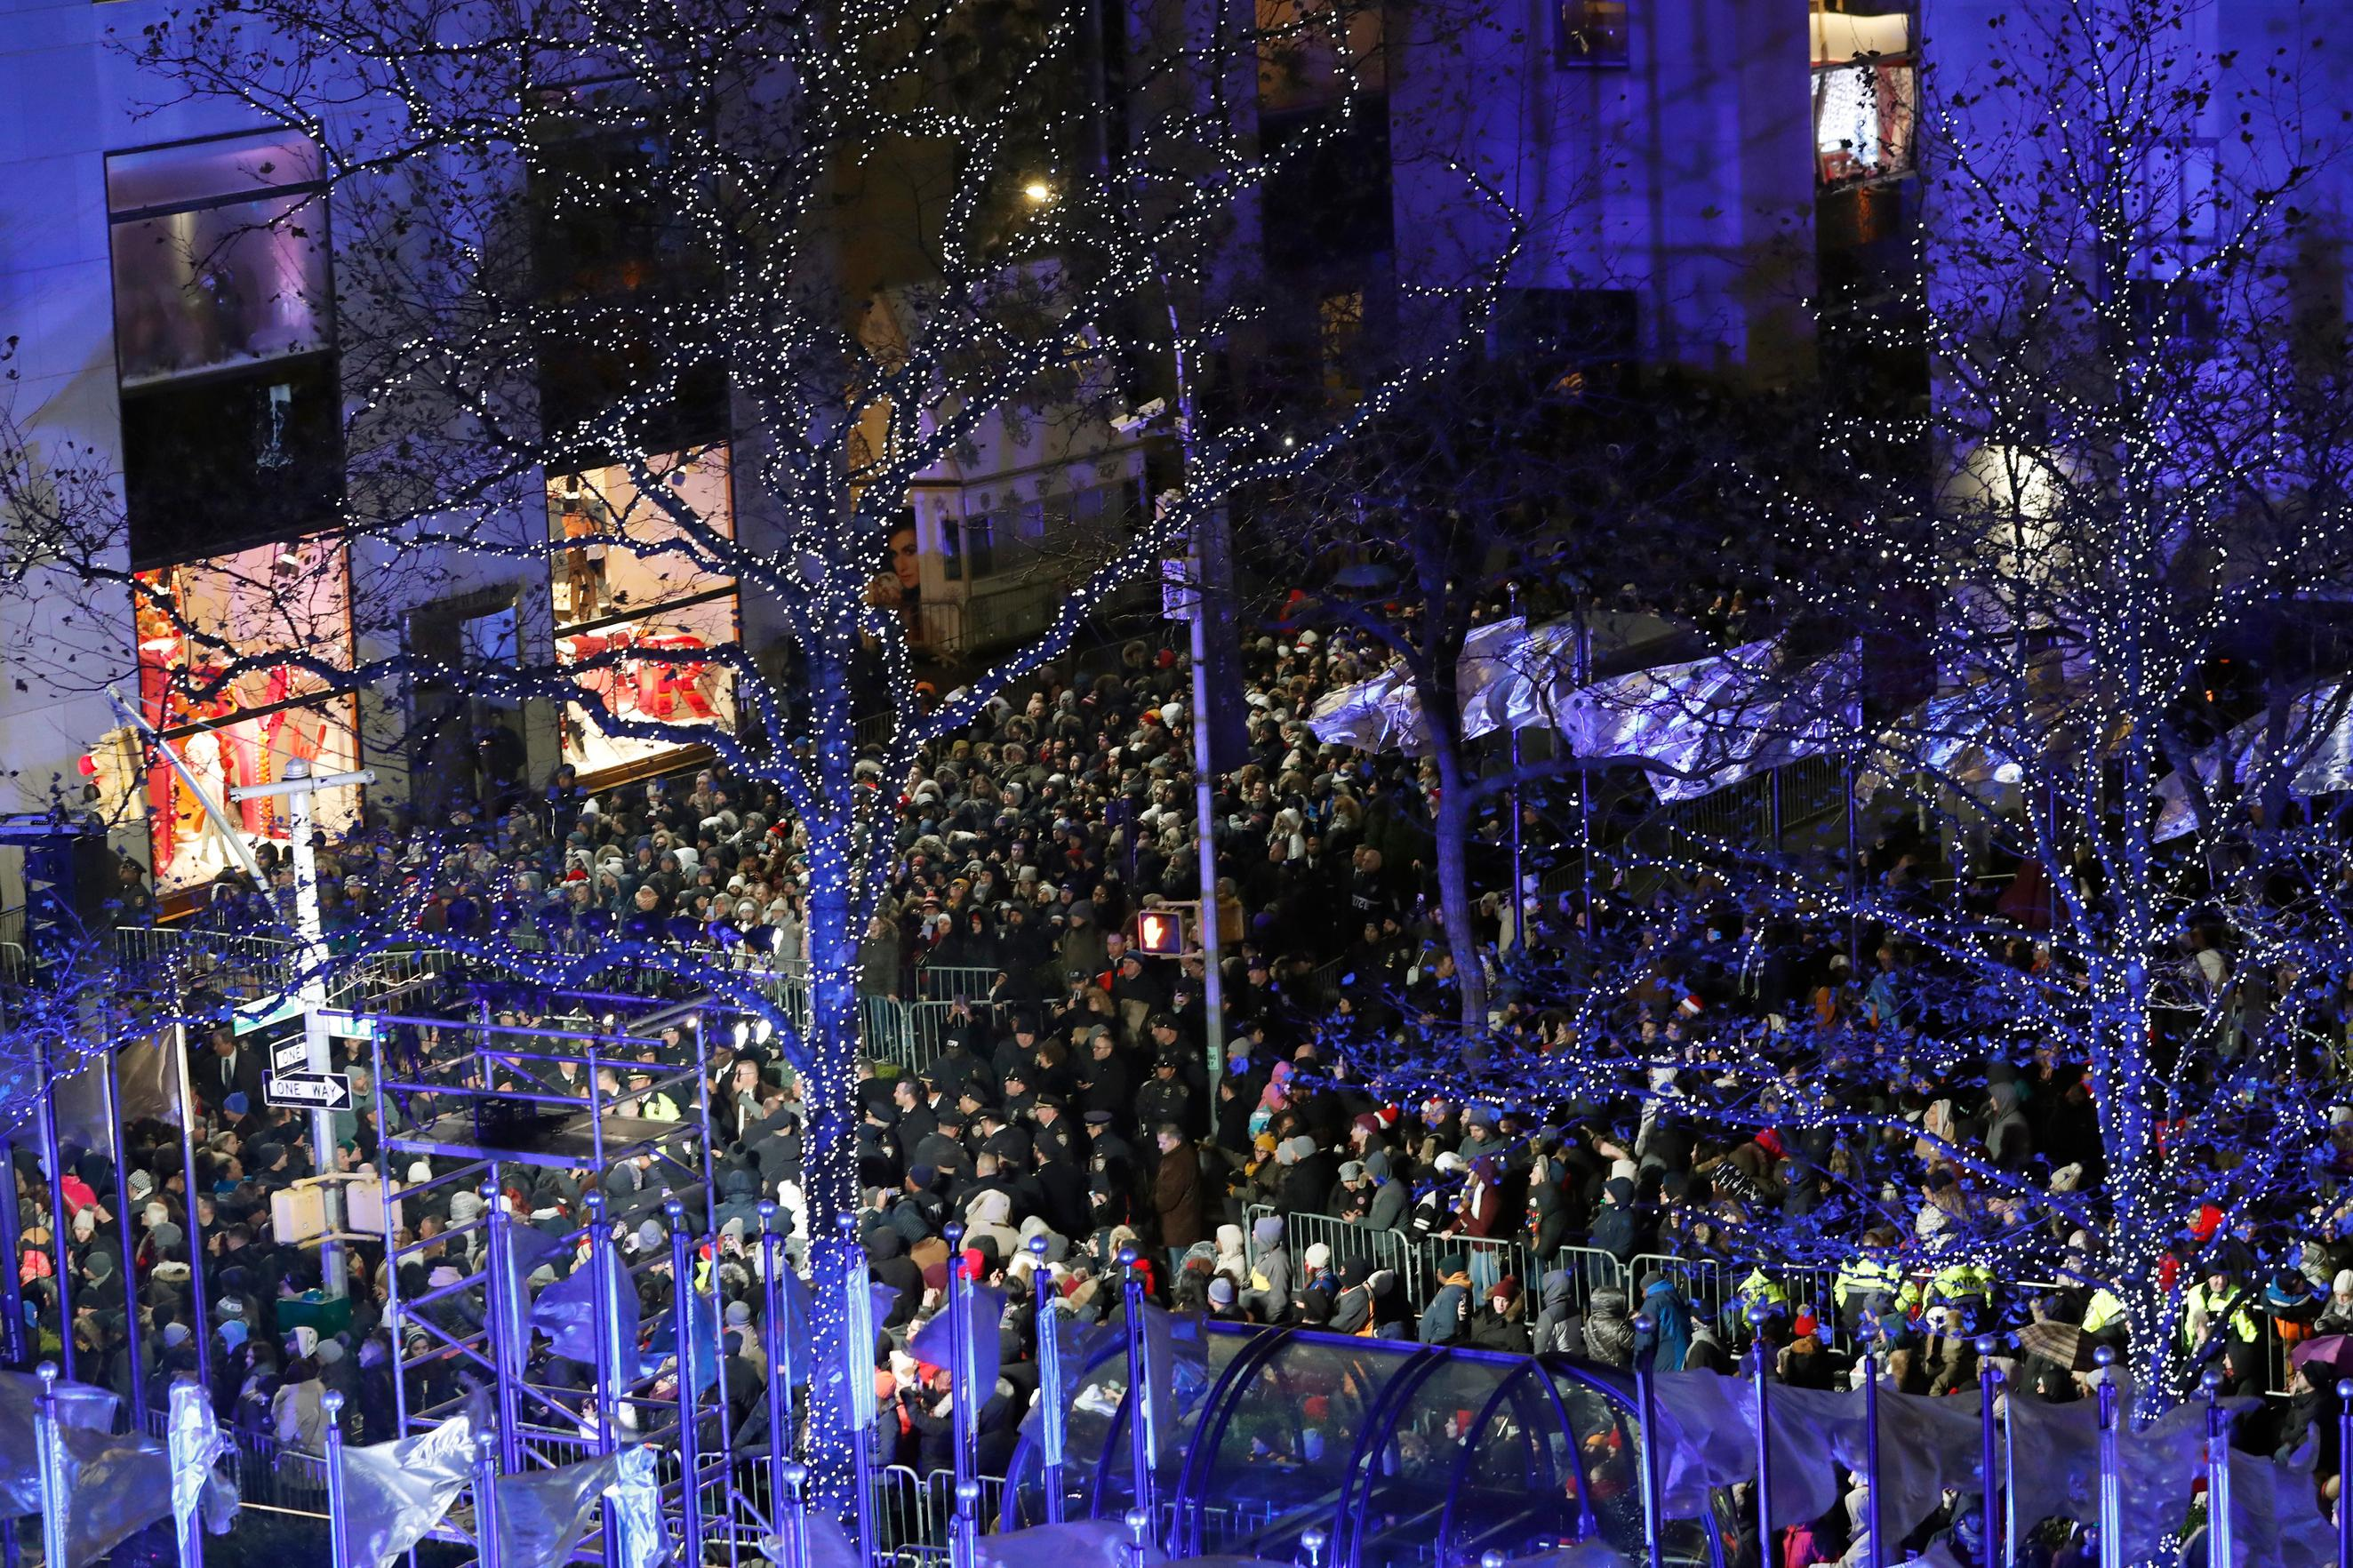 Crowds gather in Rockefeller Center to watch the 87th annual Rockefeller Center Christmas Tree lighting ceremony, Wednesday, Dec. 4, 2019, in New York. (AP Photo/Kathy Willens)